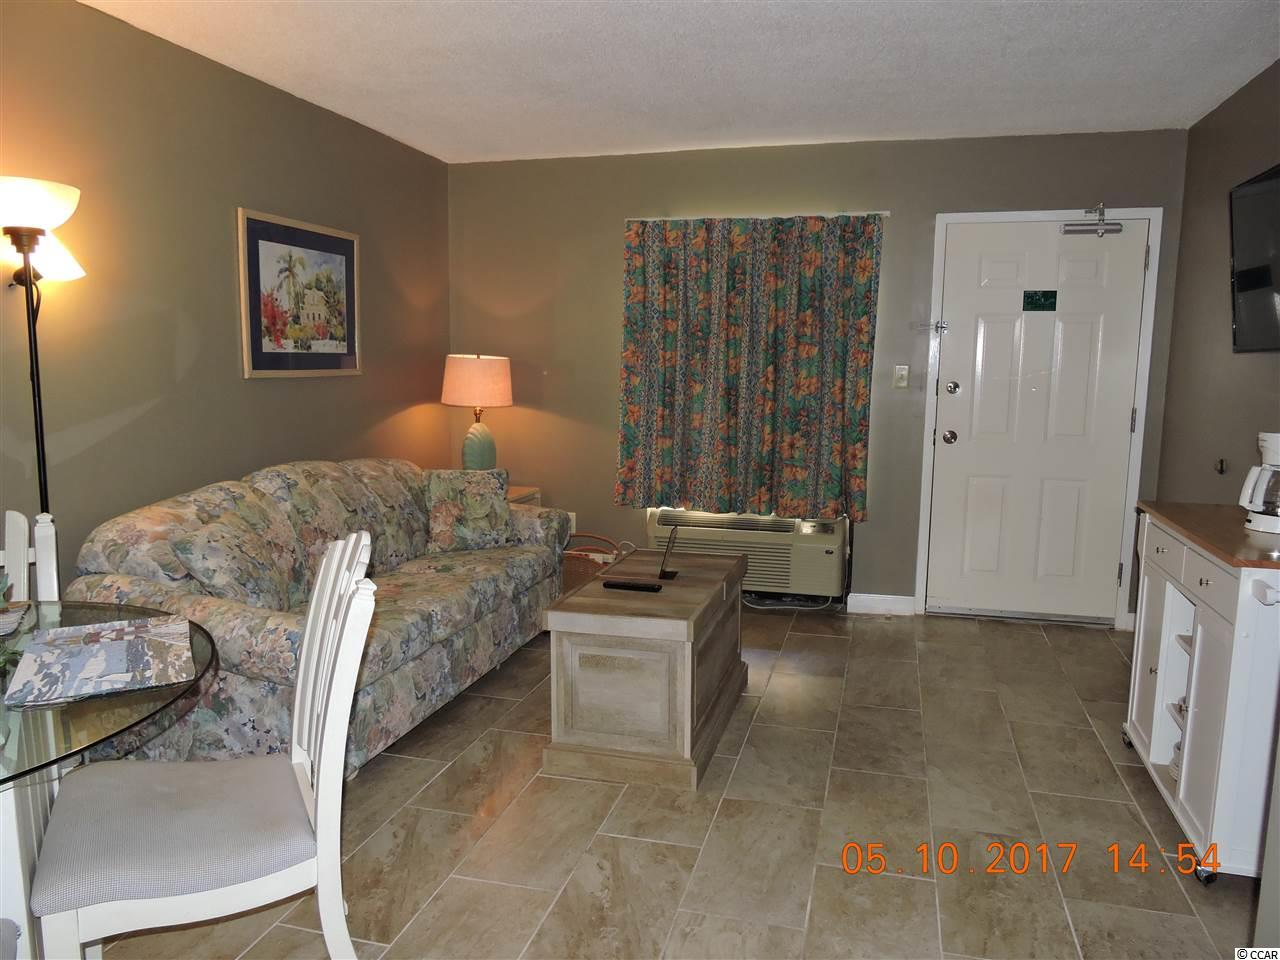 Real estate for sale at  VERANDAS, THE - NMB - North Myrtle Beach, SC